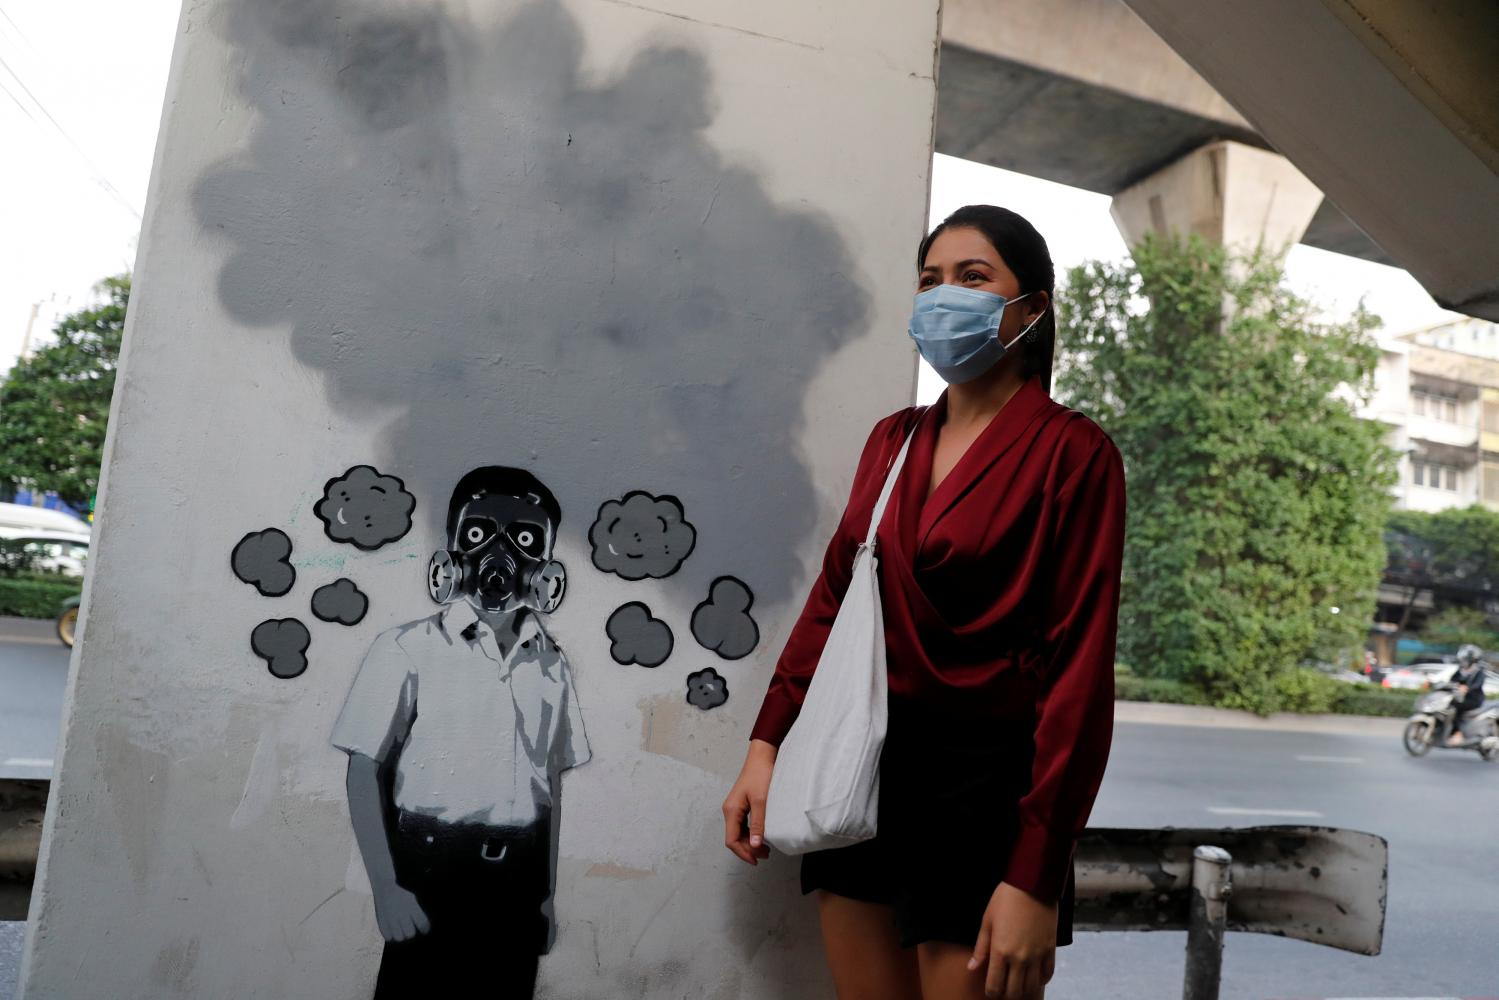 A pedestrian poses next to a graffito by Thai artist Headache Stencil which references the poor air quality in Bangkok. Thais have been living with air pollution, PM2.5 particles, and have worn N95 masks years before Covid-19 arrived.(Photo: Reuters)